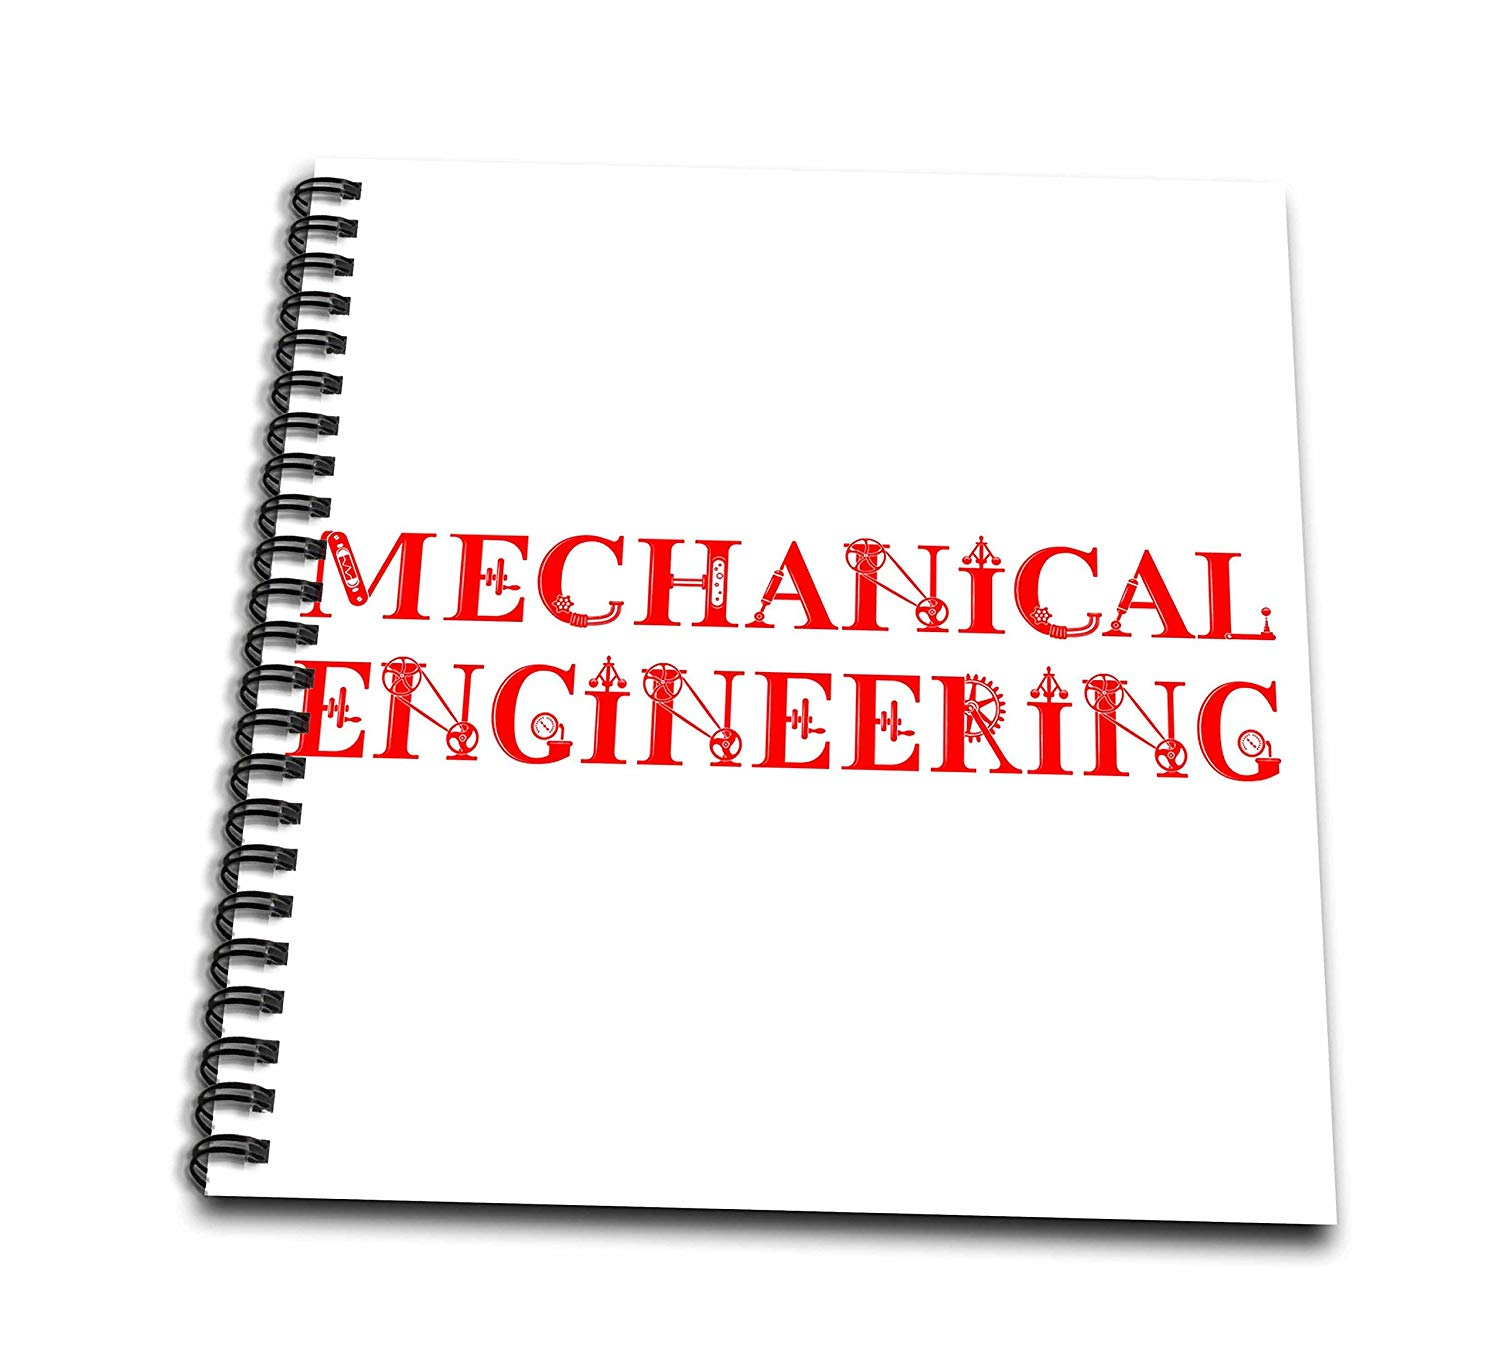 Edward mechanical pdf design joseph engineering shigley